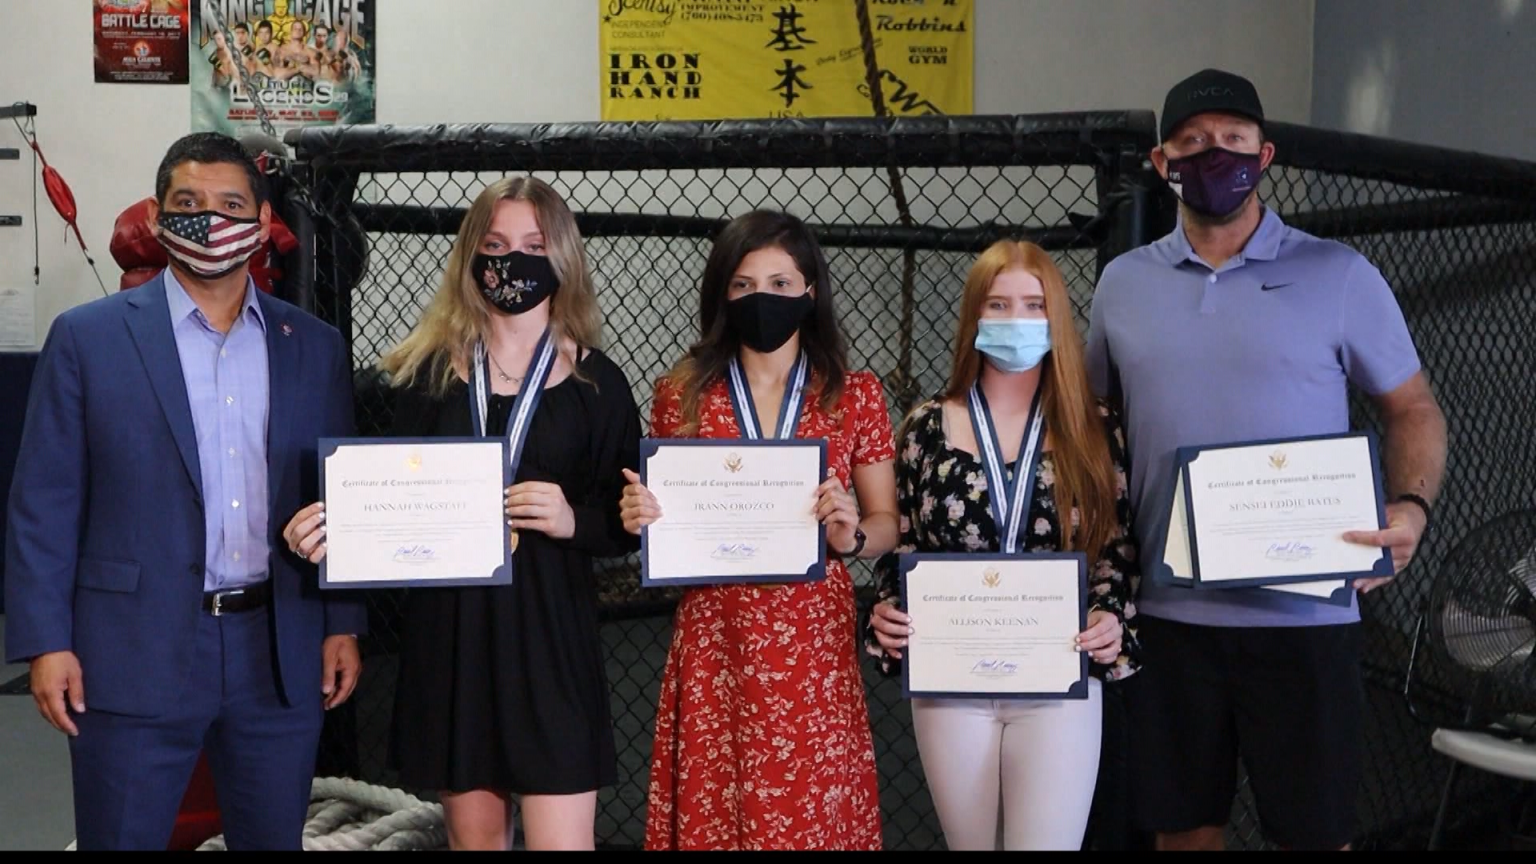 Rep. Raul Ruiz Gives Congressional Honor to Desert Hot Springs Youth MMA Fighters